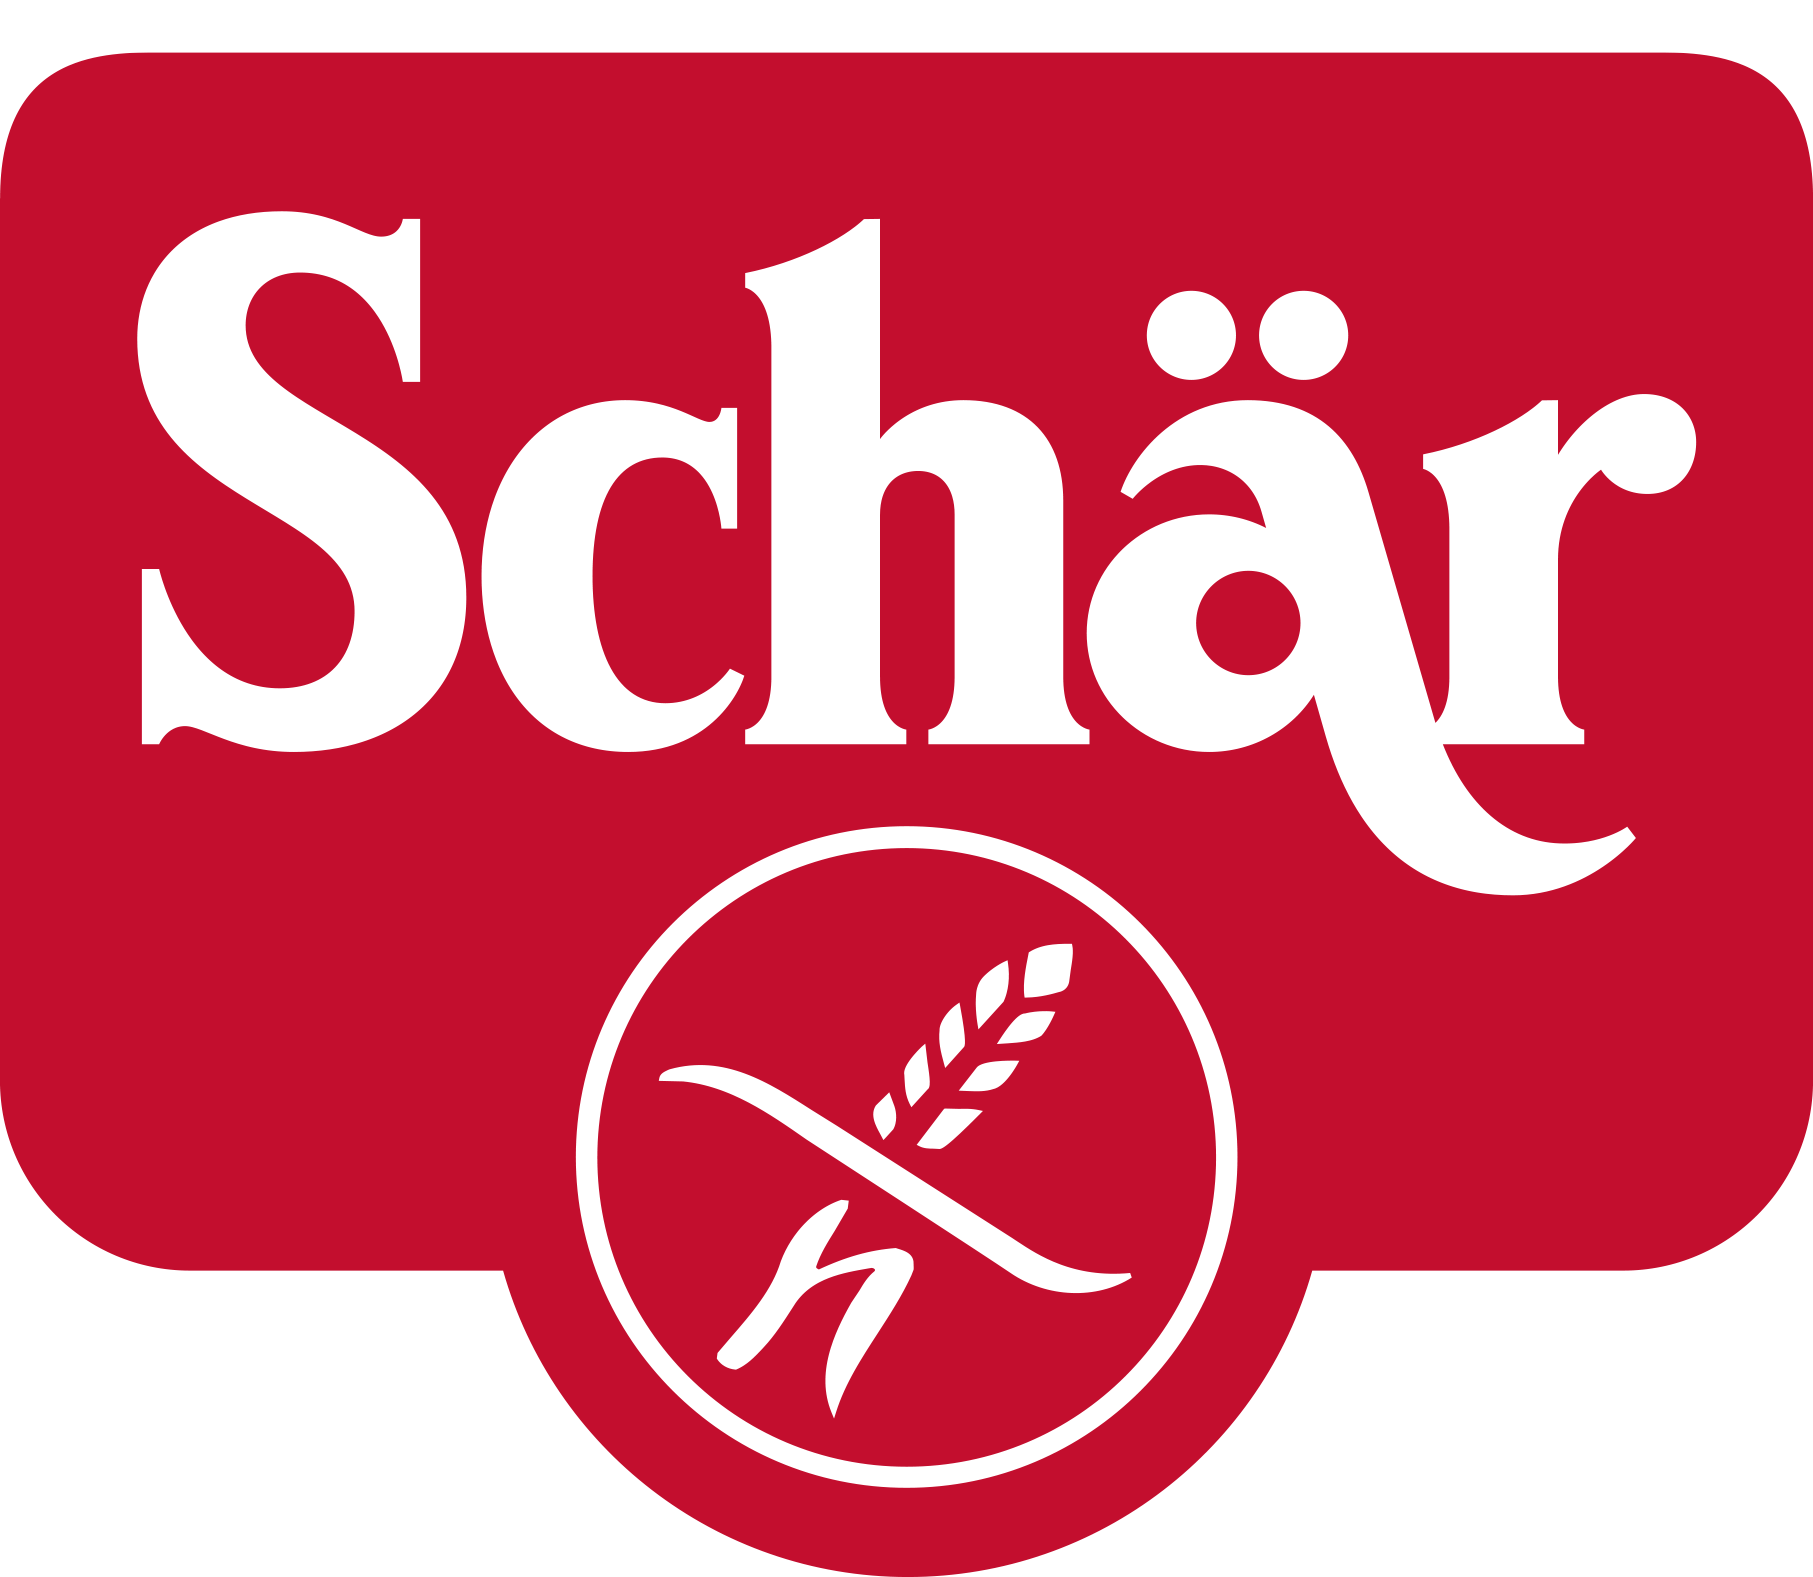 Dr Schar